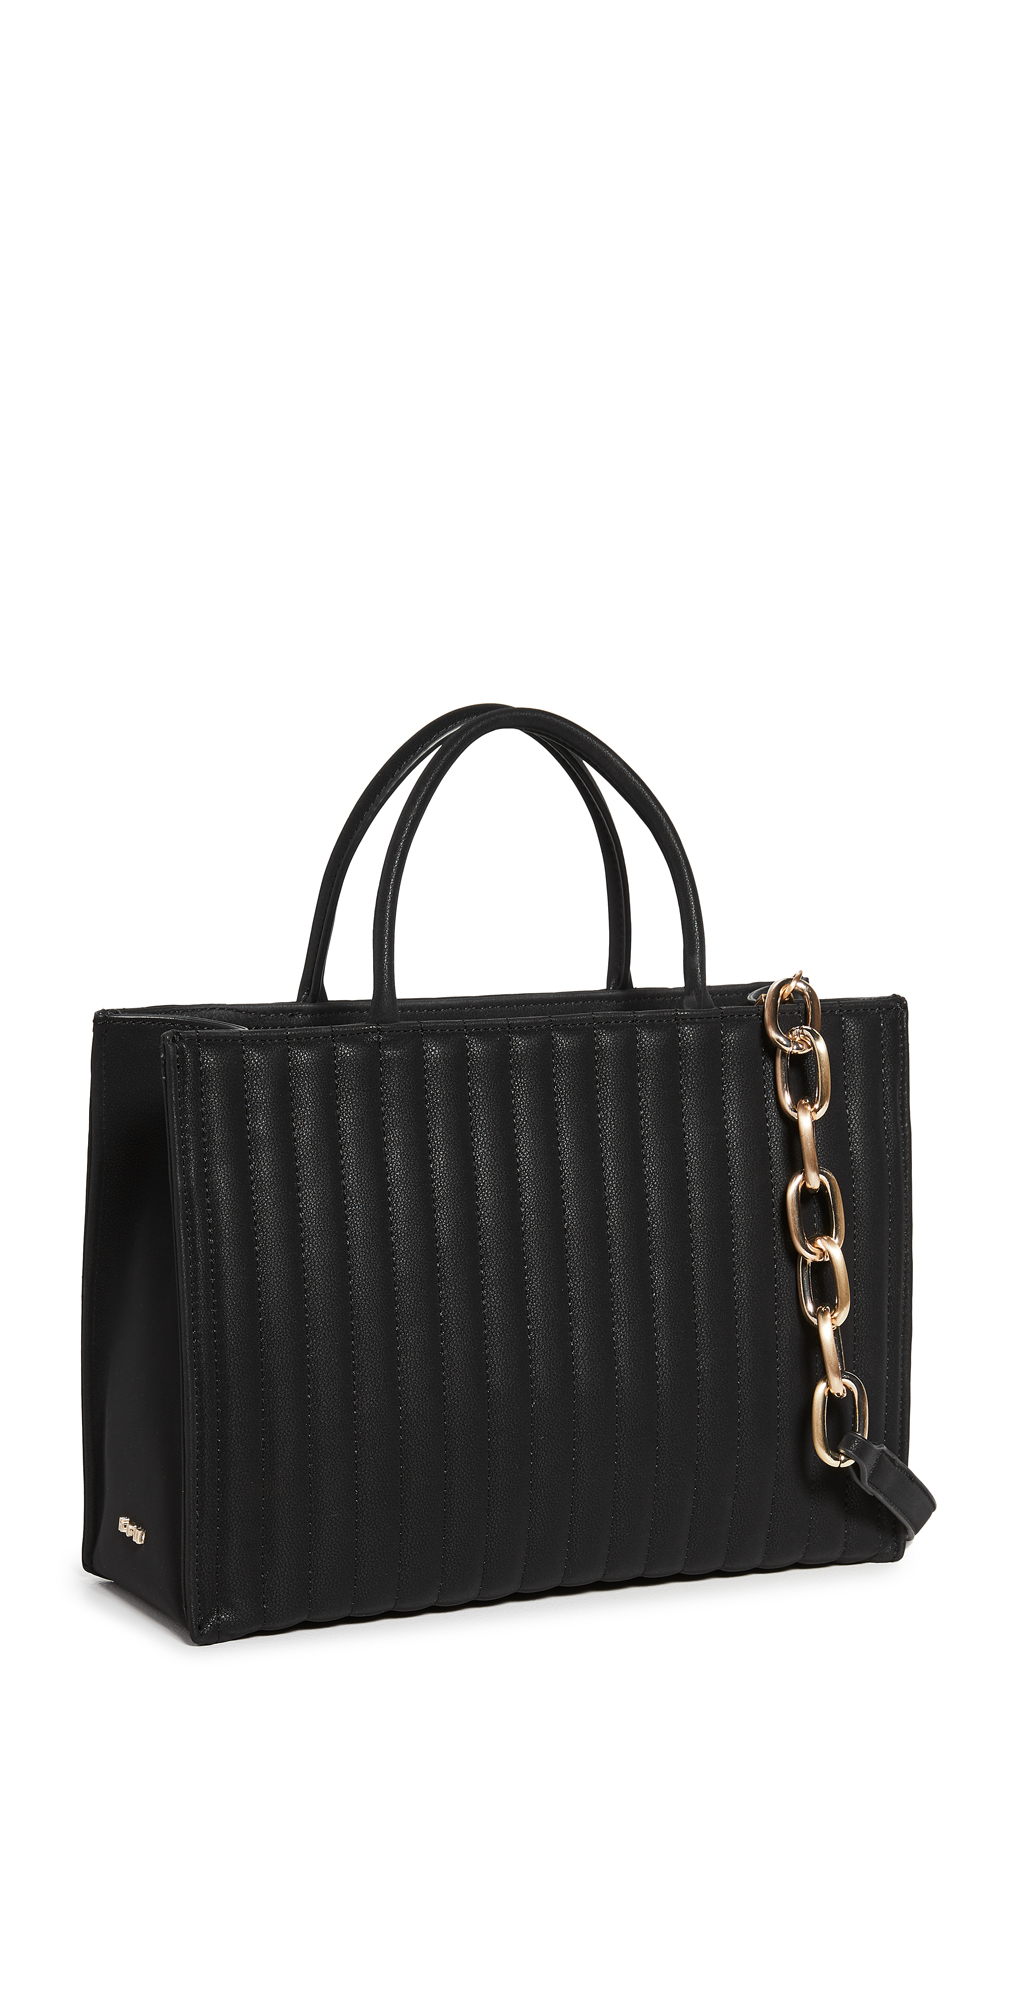 House of Want H.O.W. We Boss Tote